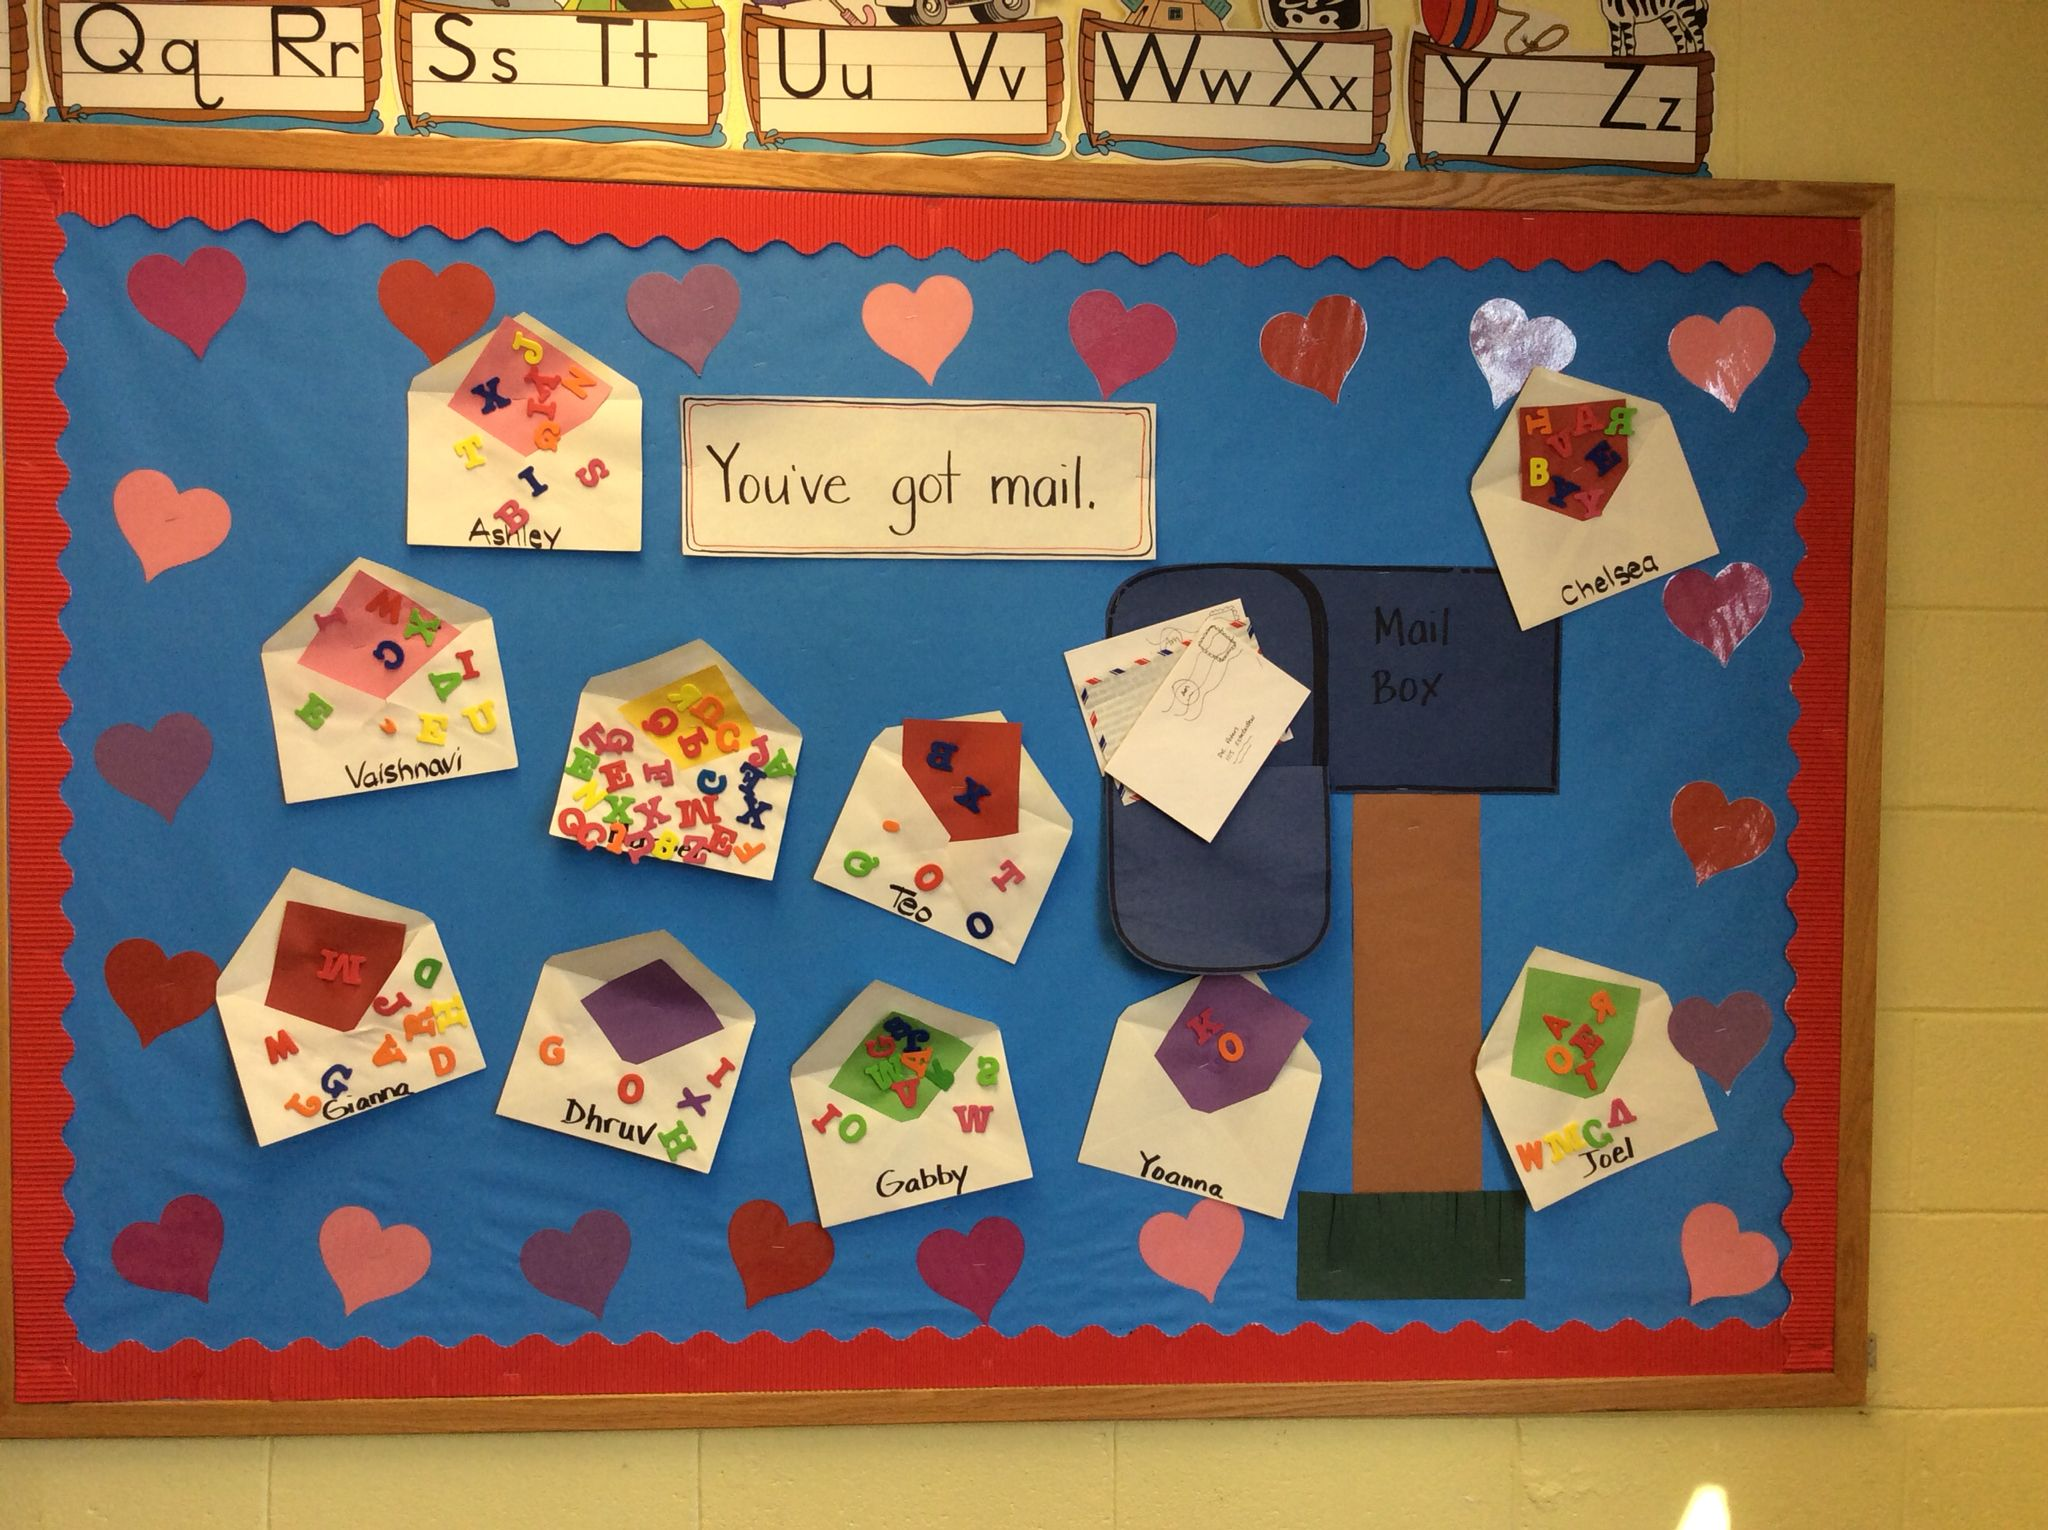 Post Office Theme Bulletin Board We Do This Theme In February And Tie In Valentine S Day